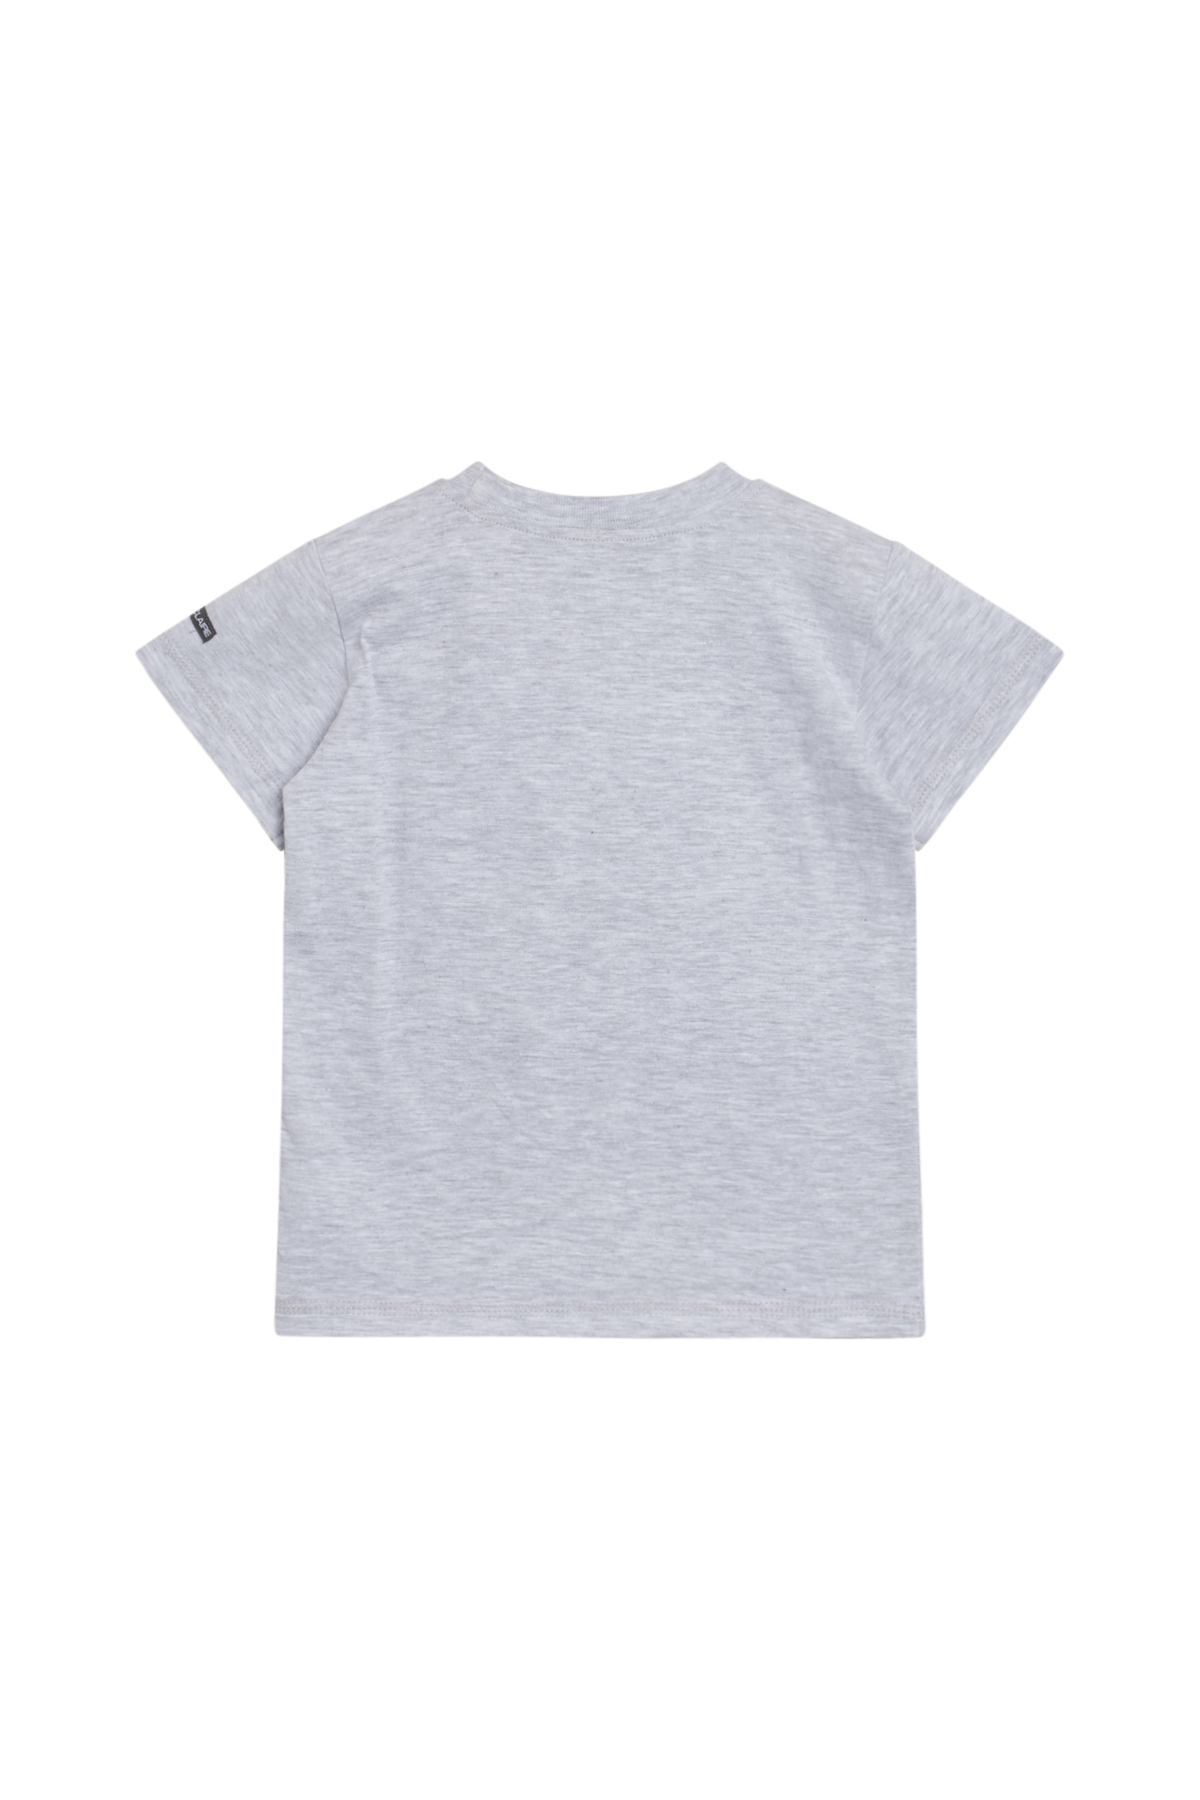 Hust and Claire Arthur t-shirt, Pearl grey, 104